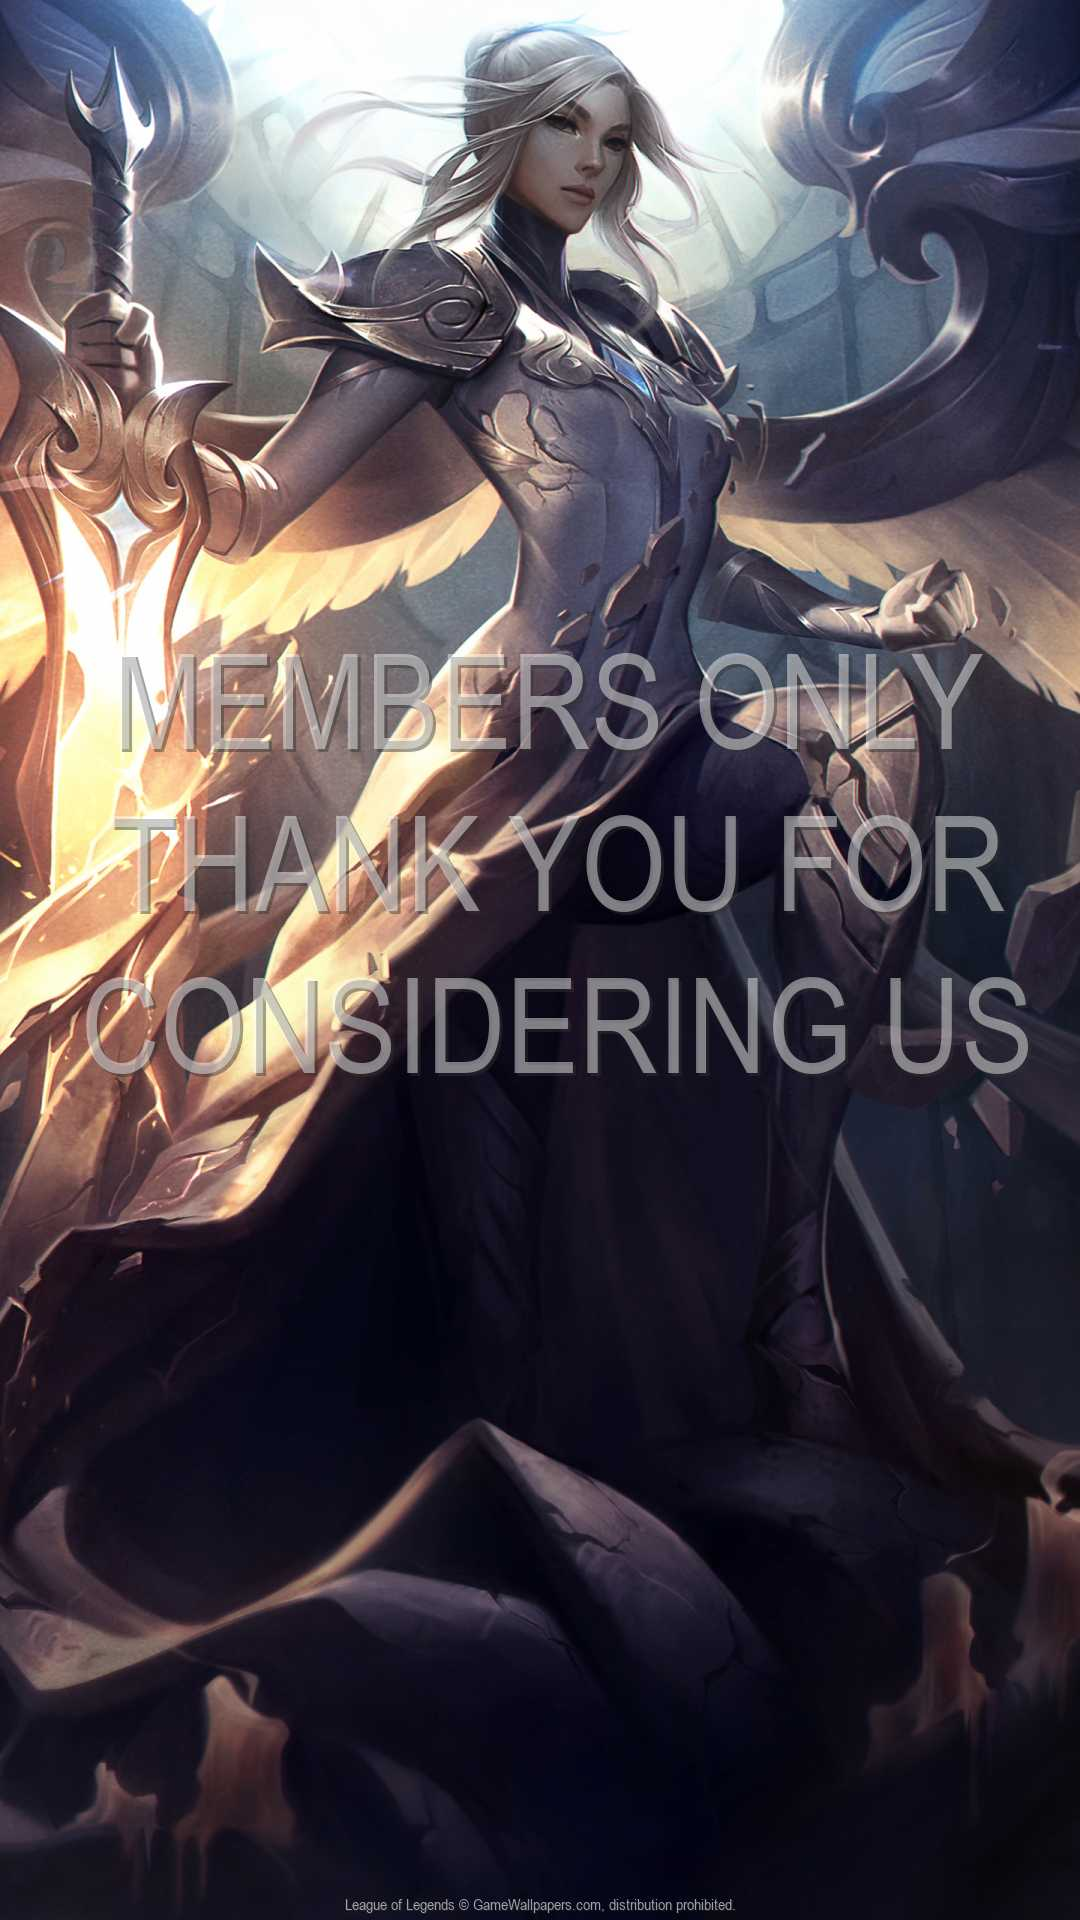 League of Legends 1080p Vertical Mobile wallpaper or background 106